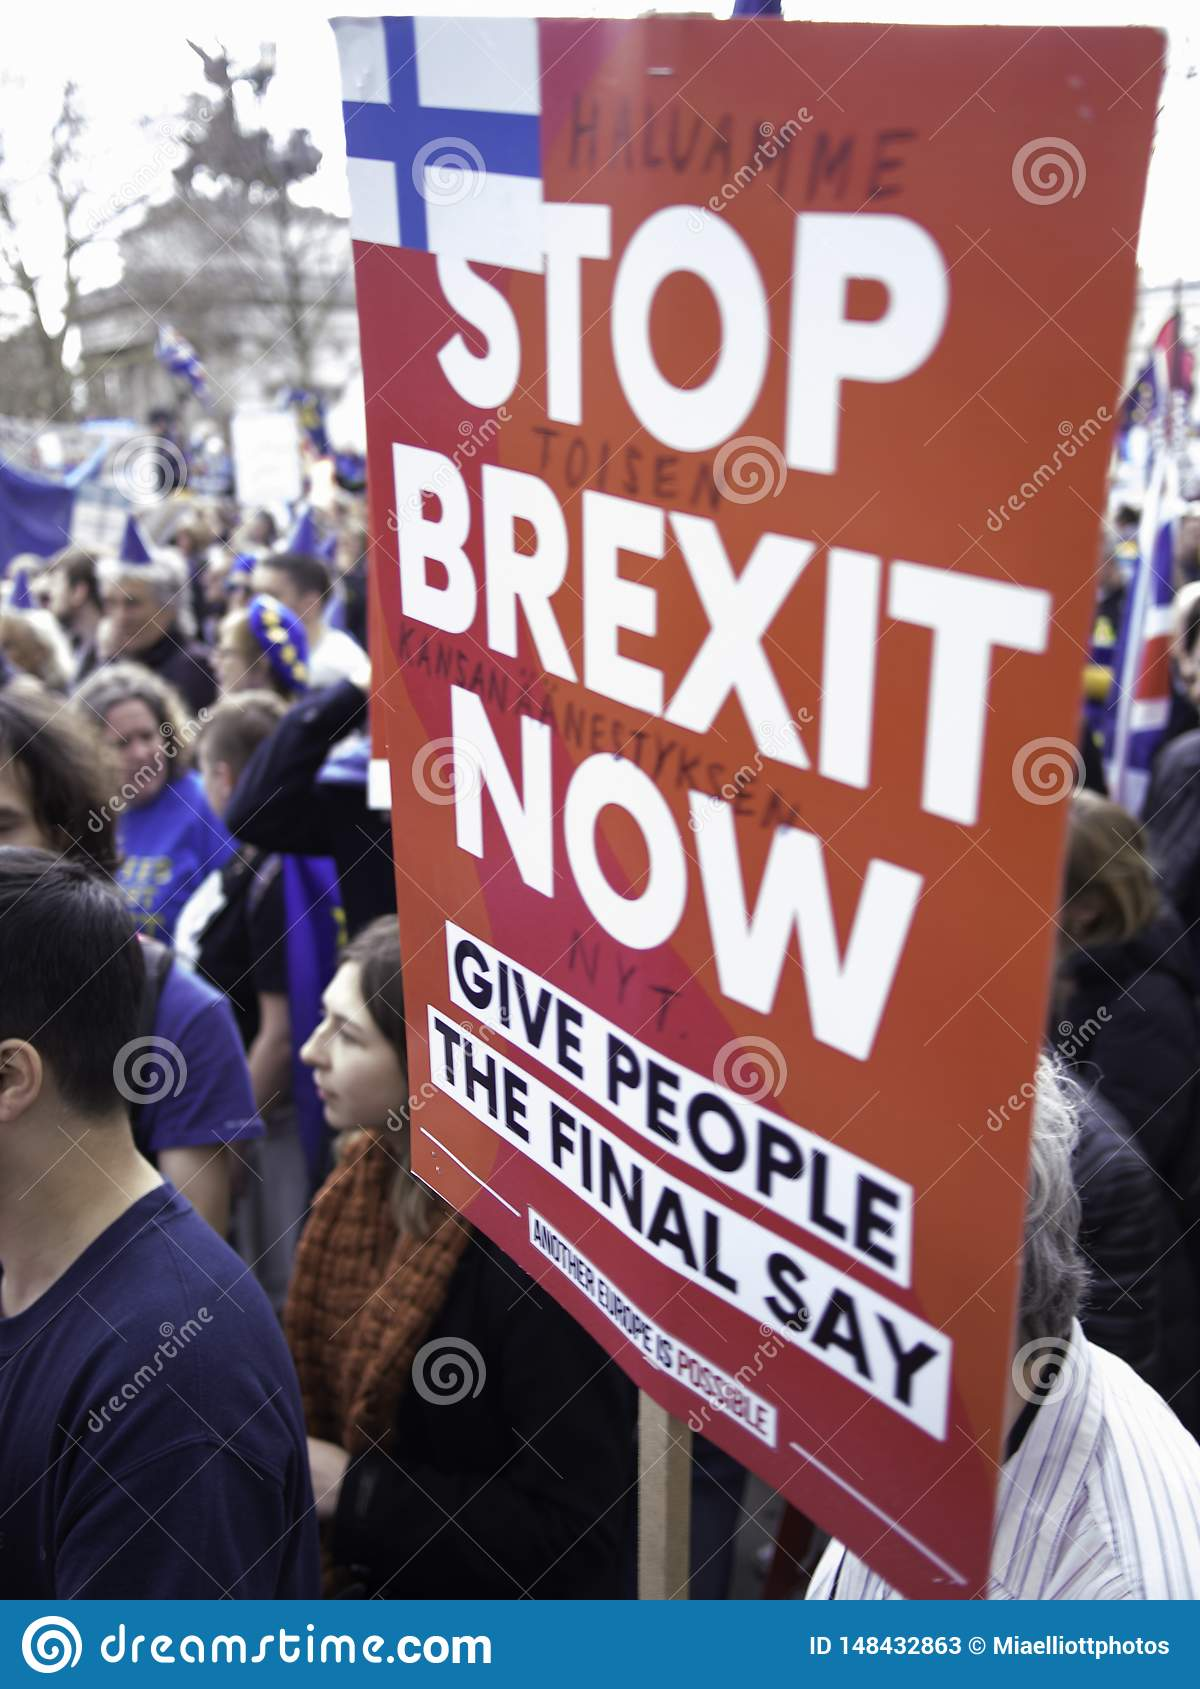 Anti Brexit protester holding a placard. London, March 2019